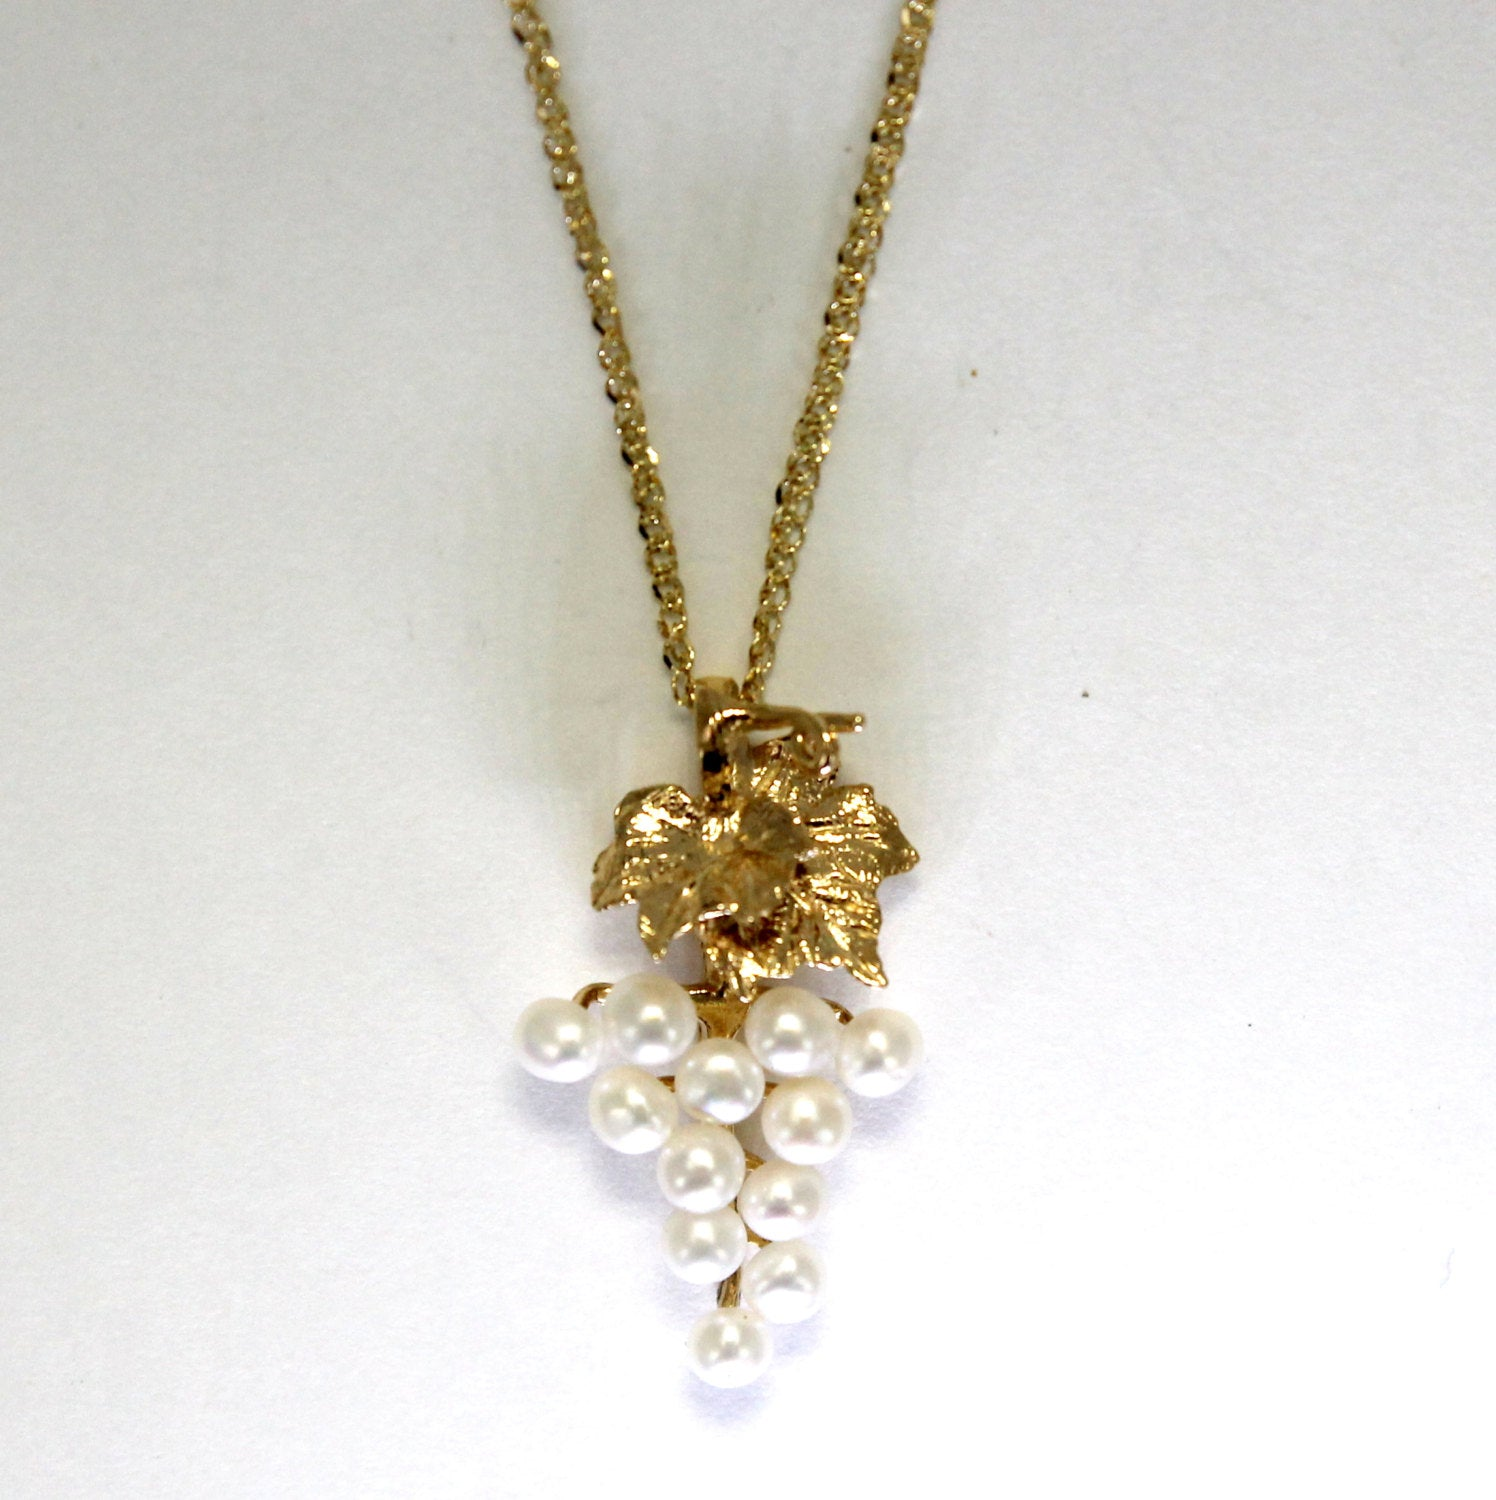 14kt. Yellow Gold White Pearl Necklace